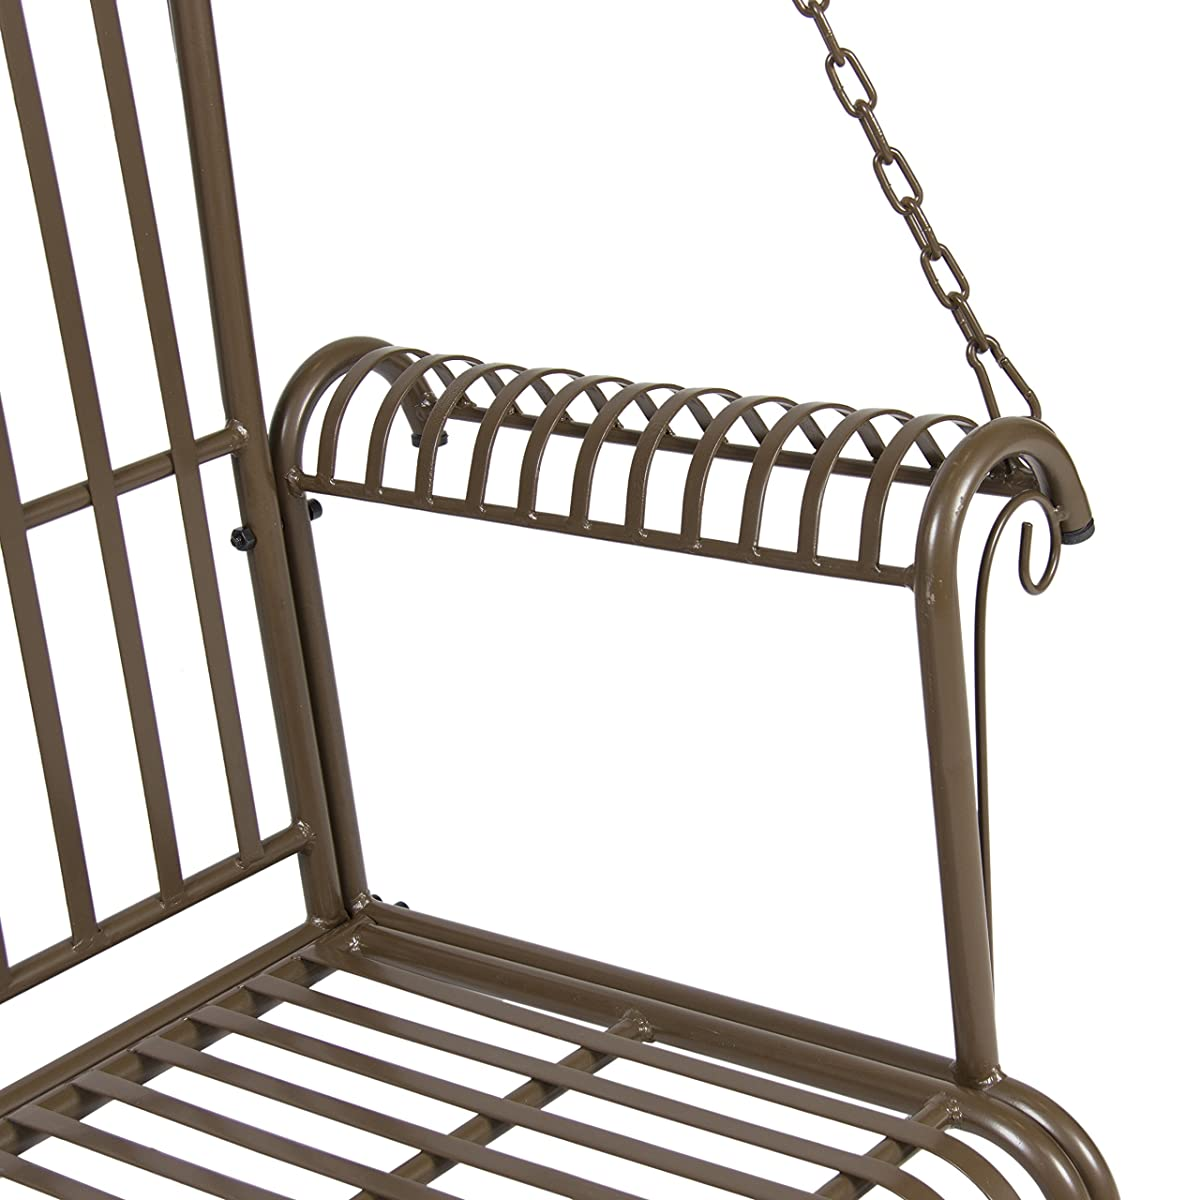 Best Choice Products Iron Patio Hanging Porch Swing Chair Bench Seat Outdoor Furniture